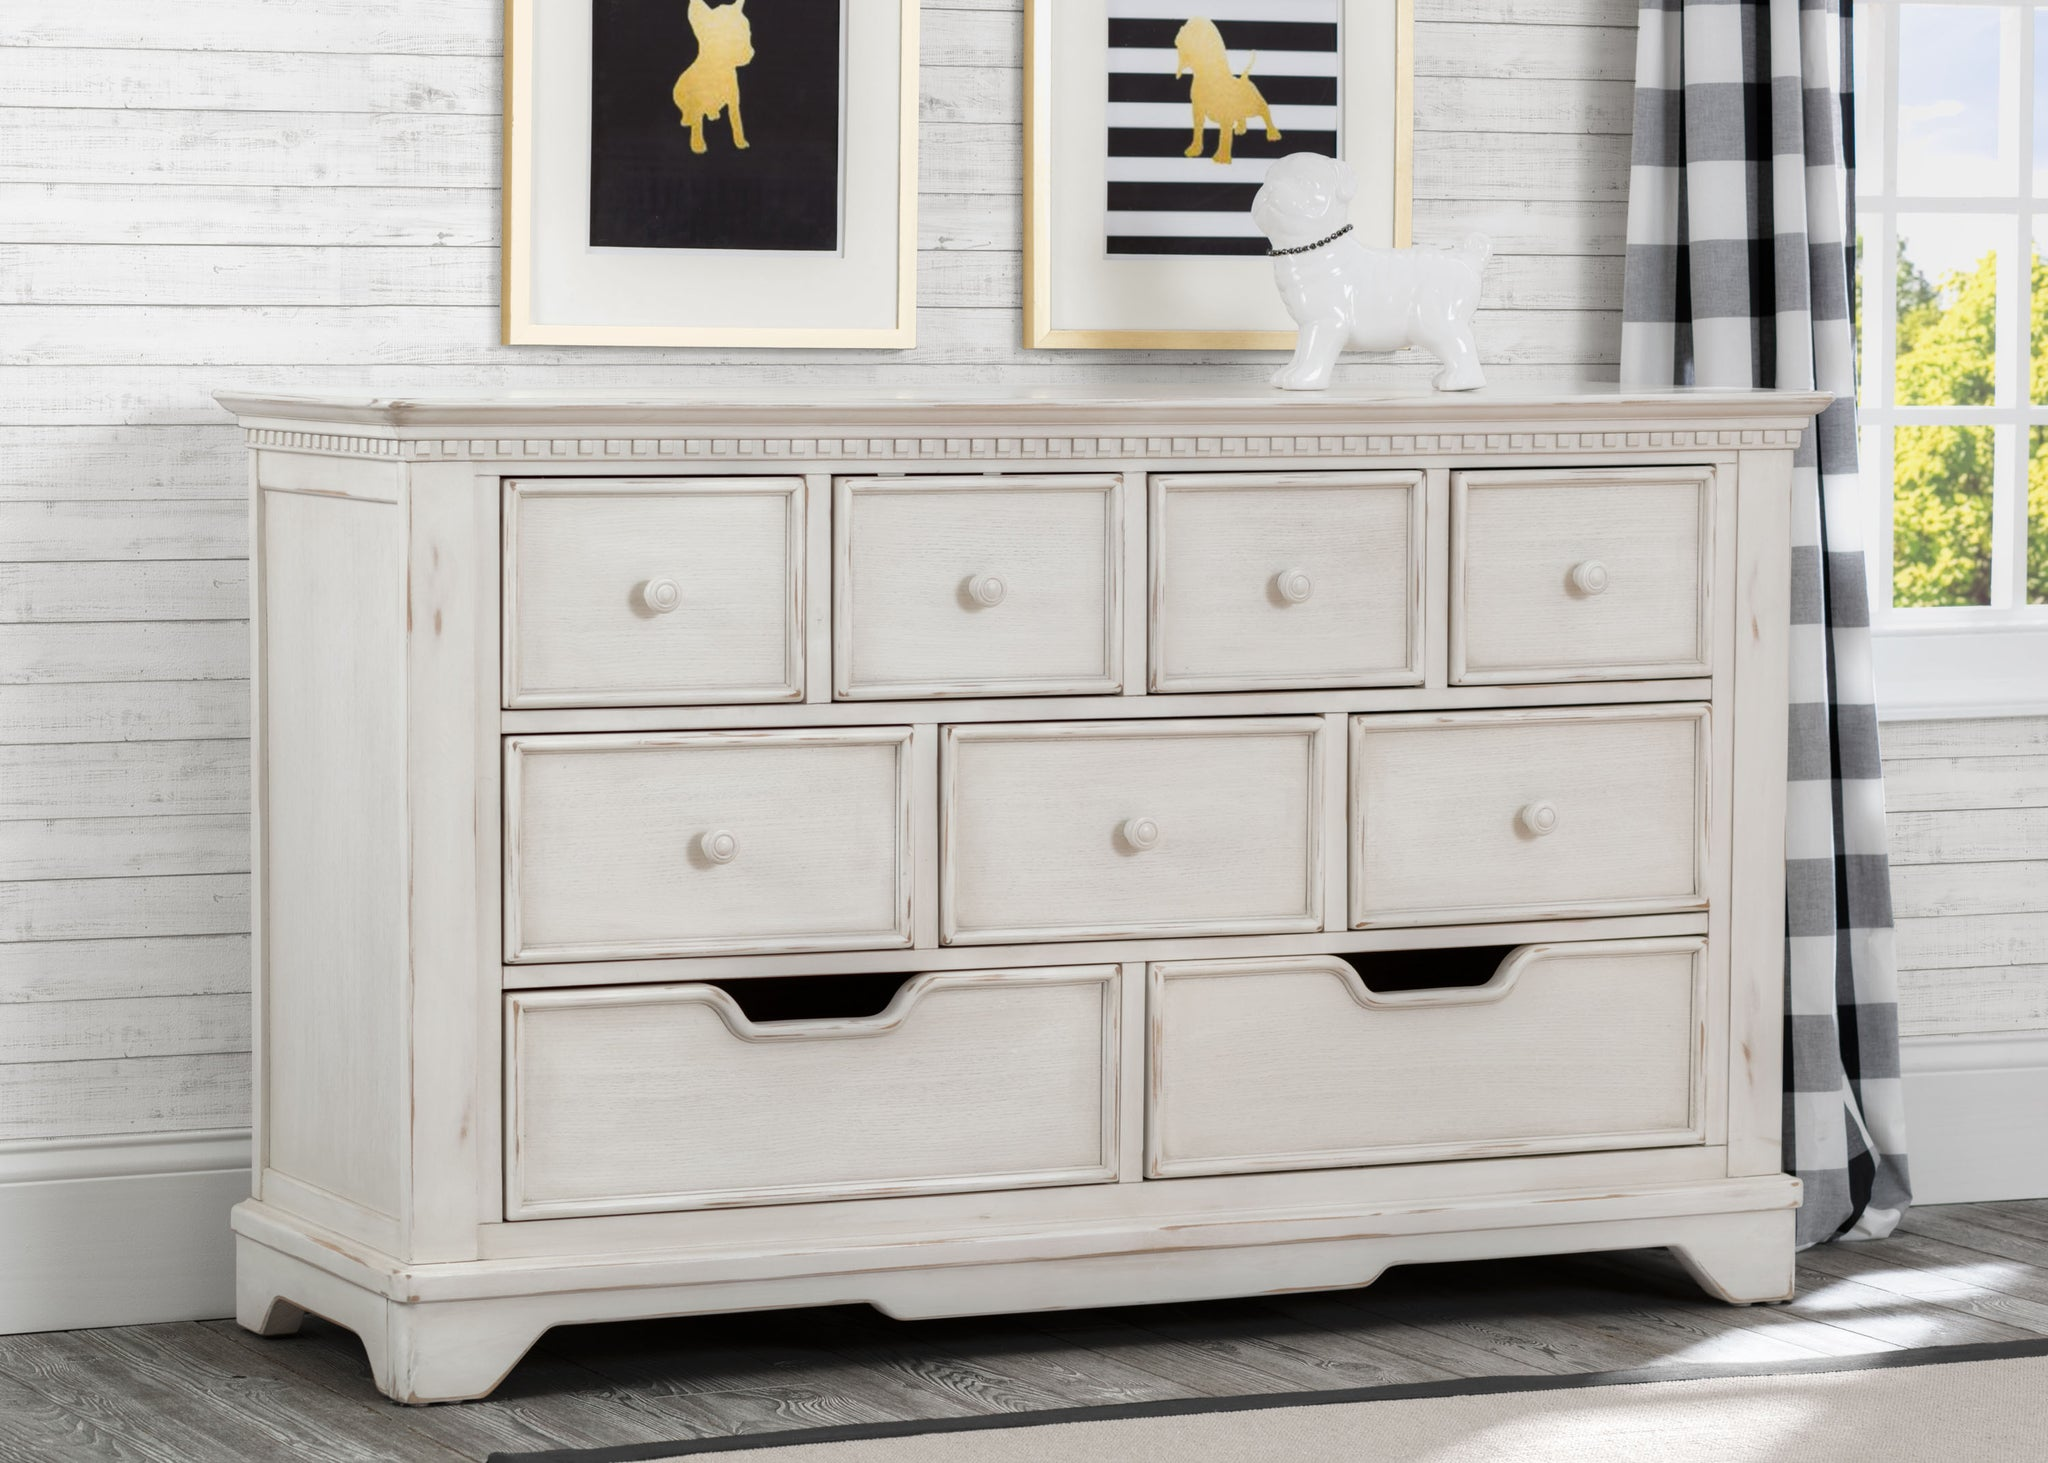 Tivoli 9 Drawer Dresser